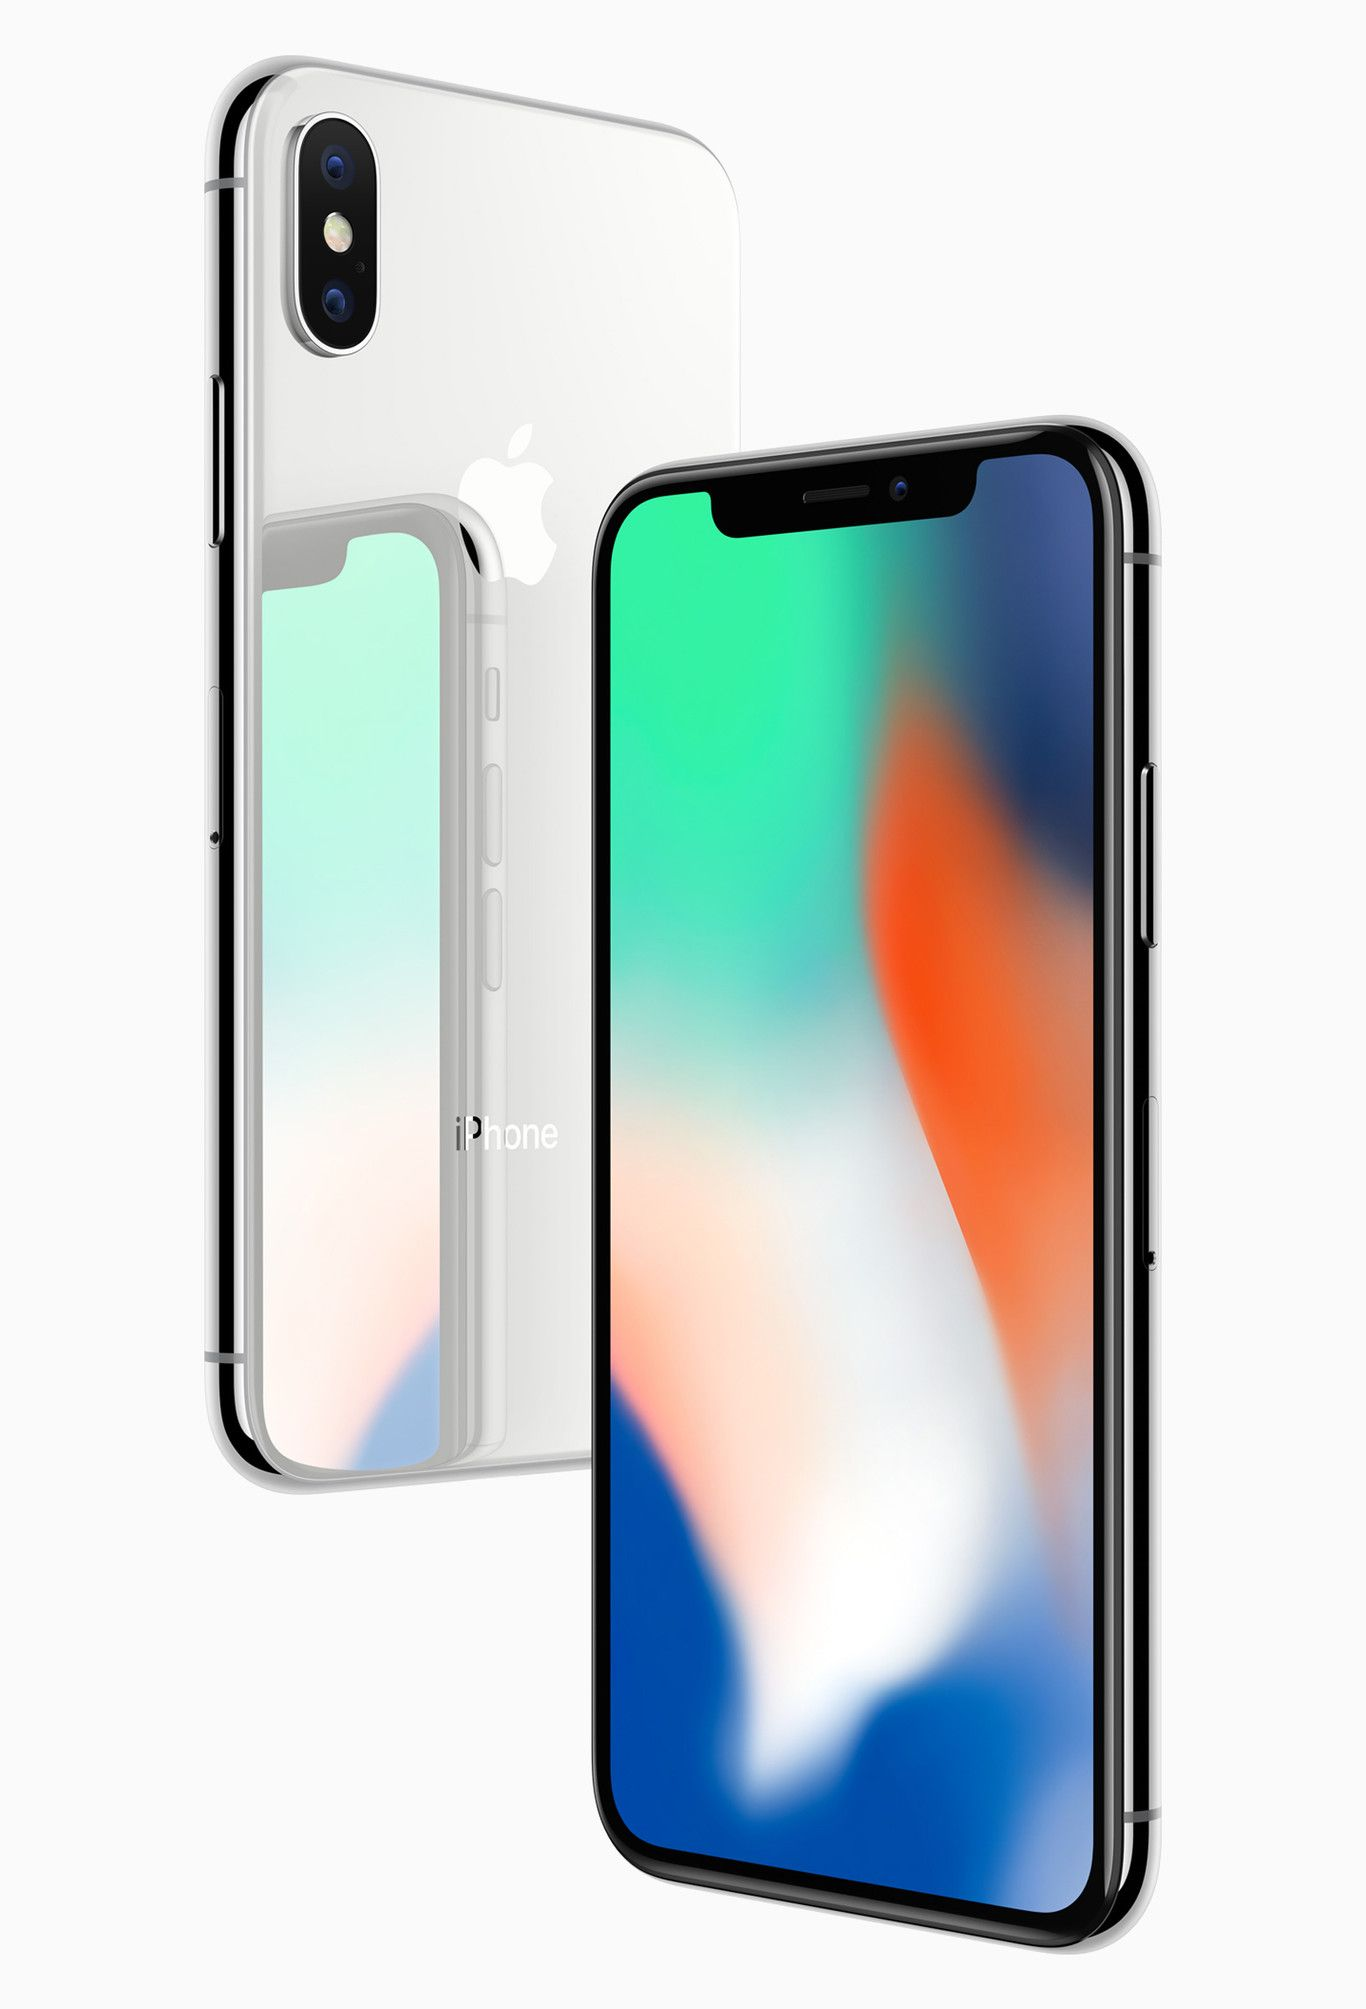 Iphone X La Nueva Joya De La Corona De Apple Pantalla Iphone 7